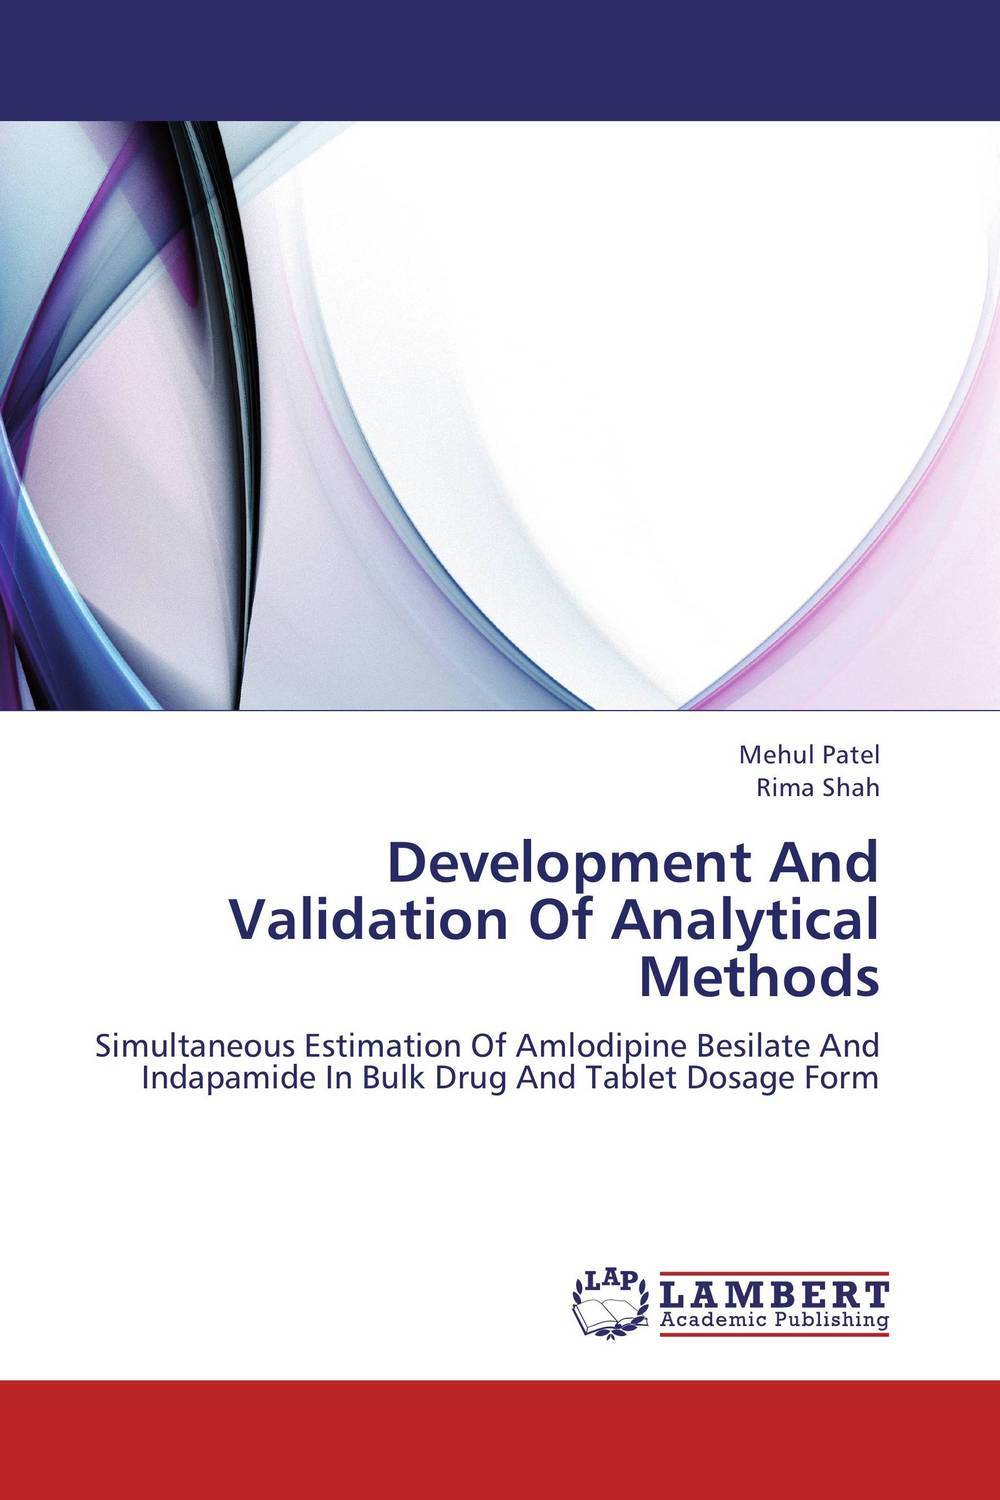 Development And Validation Of Analytical Methods belousov a security features of banknotes and other documents methods of authentication manual денежные билеты бланки ценных бумаг и документов